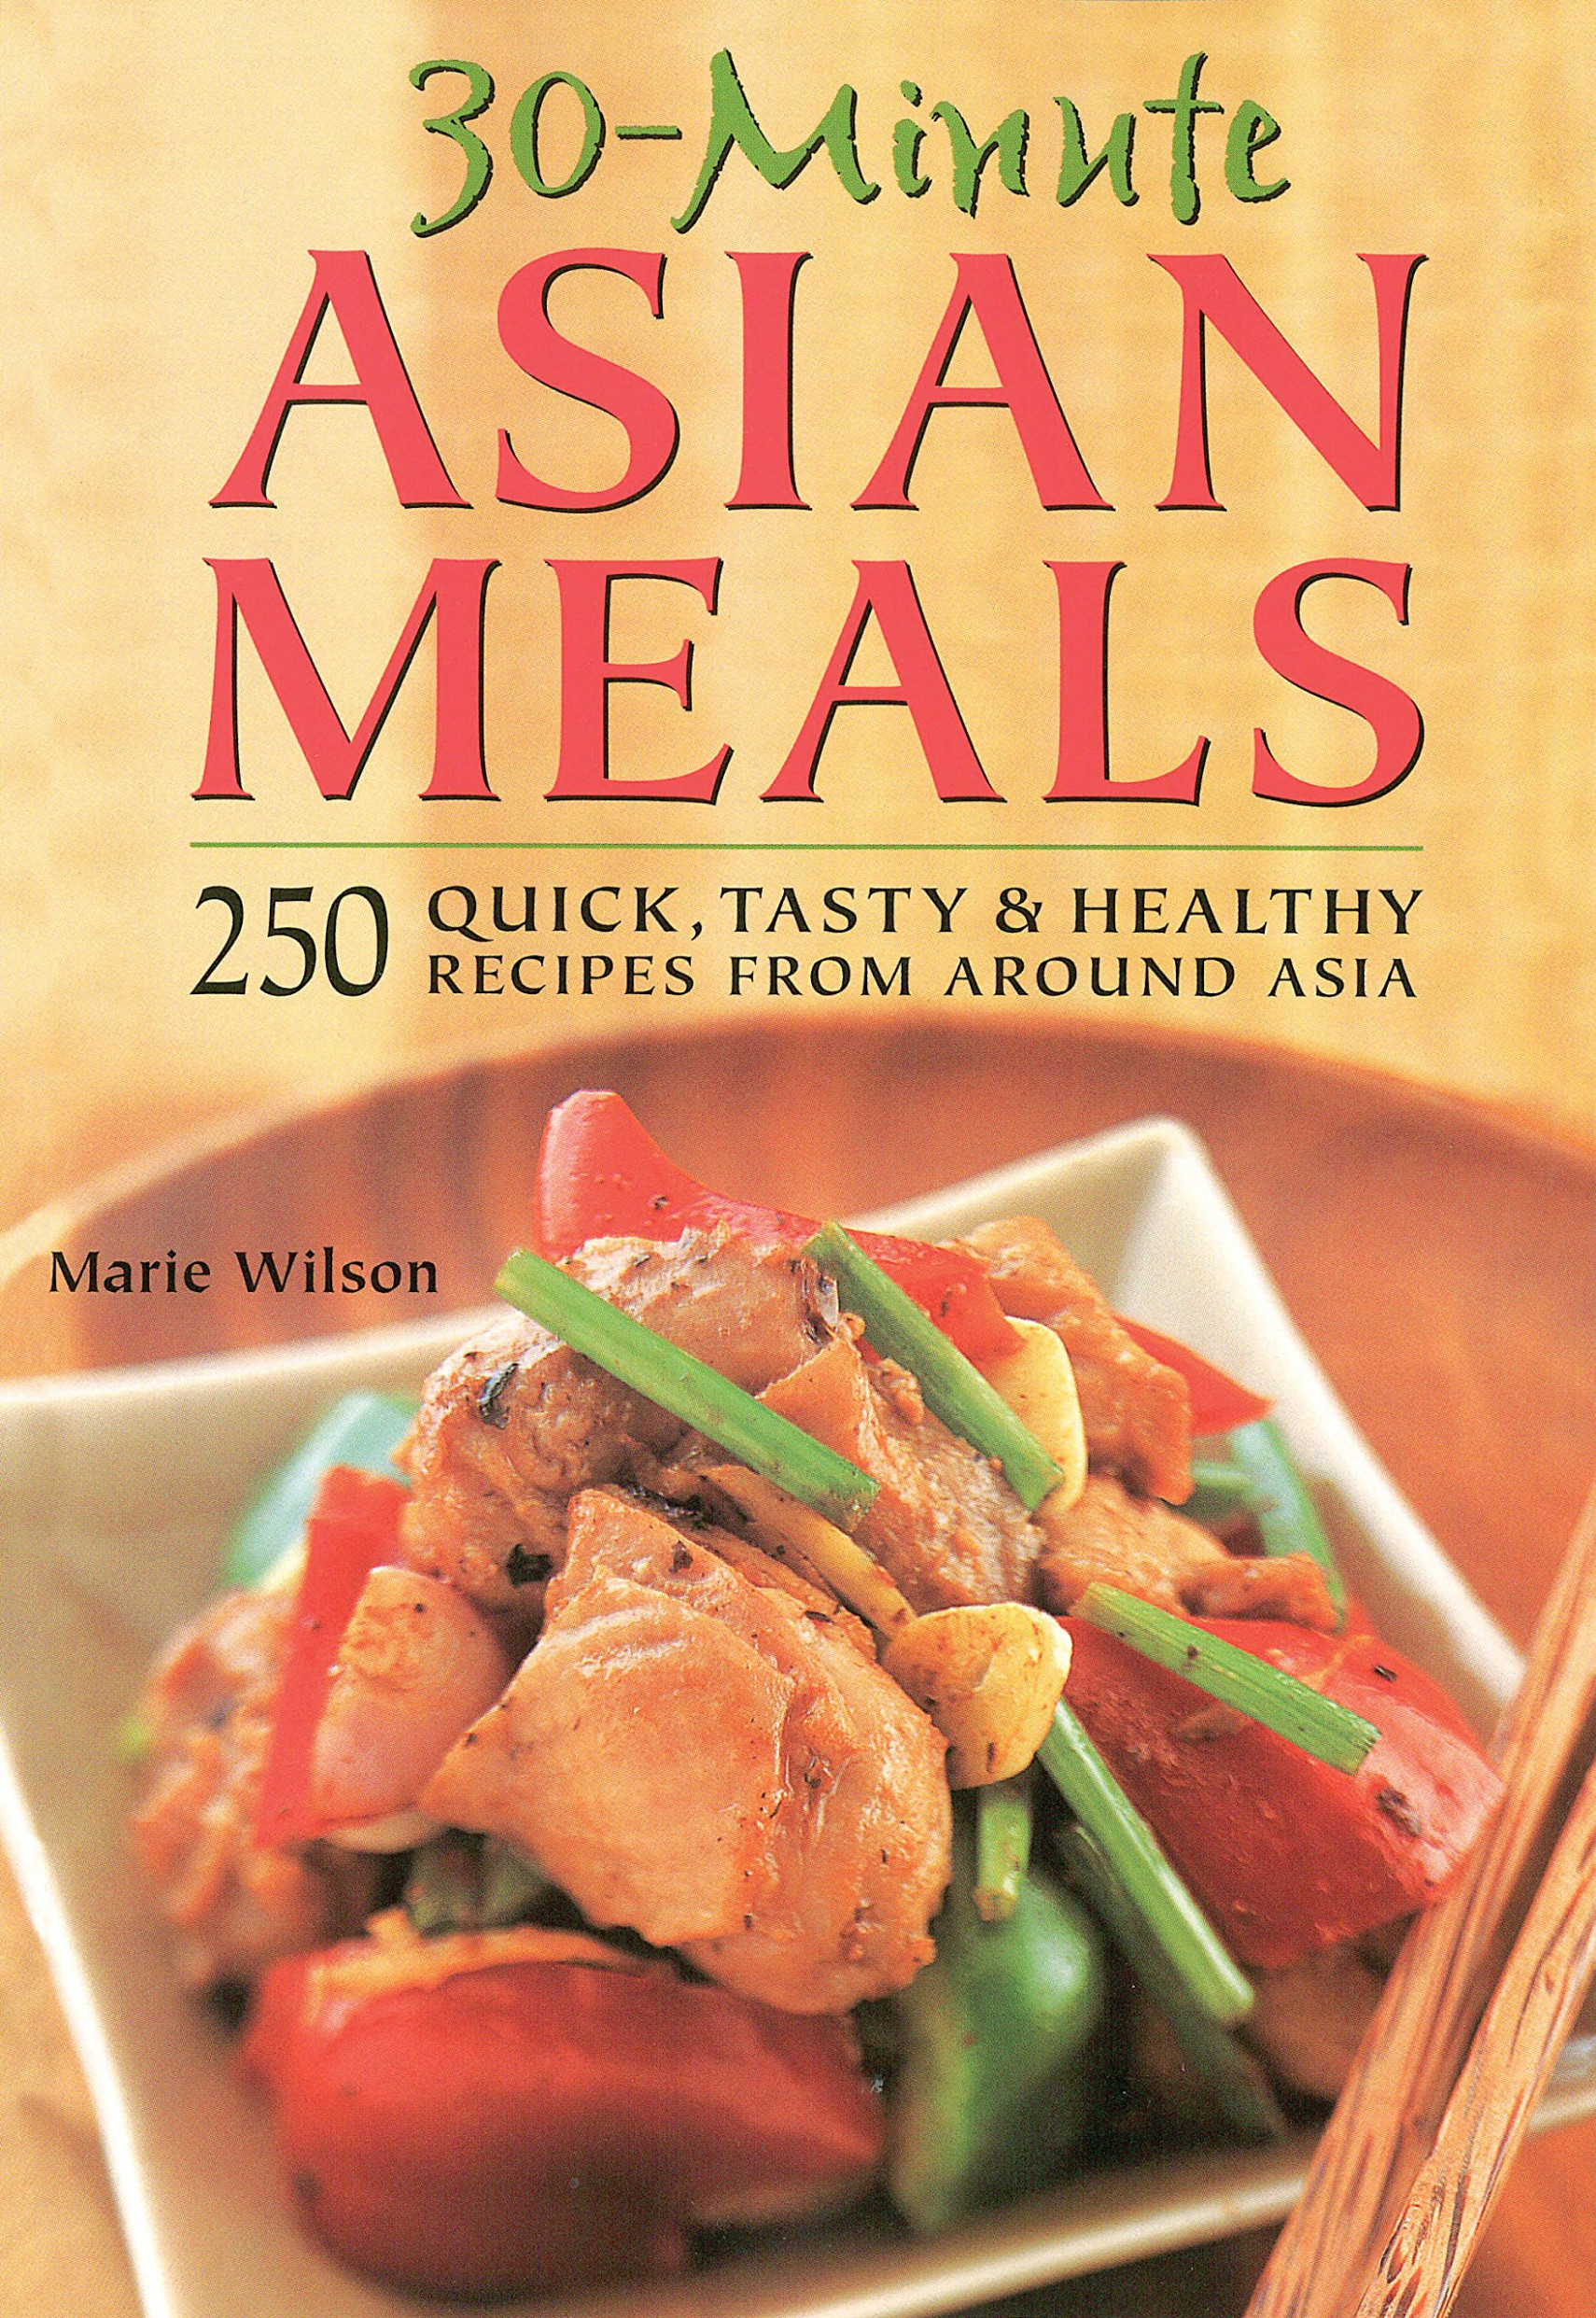 12-Minute Asian Meals: 12 Quick, Tasty & Healthy Recipes ..